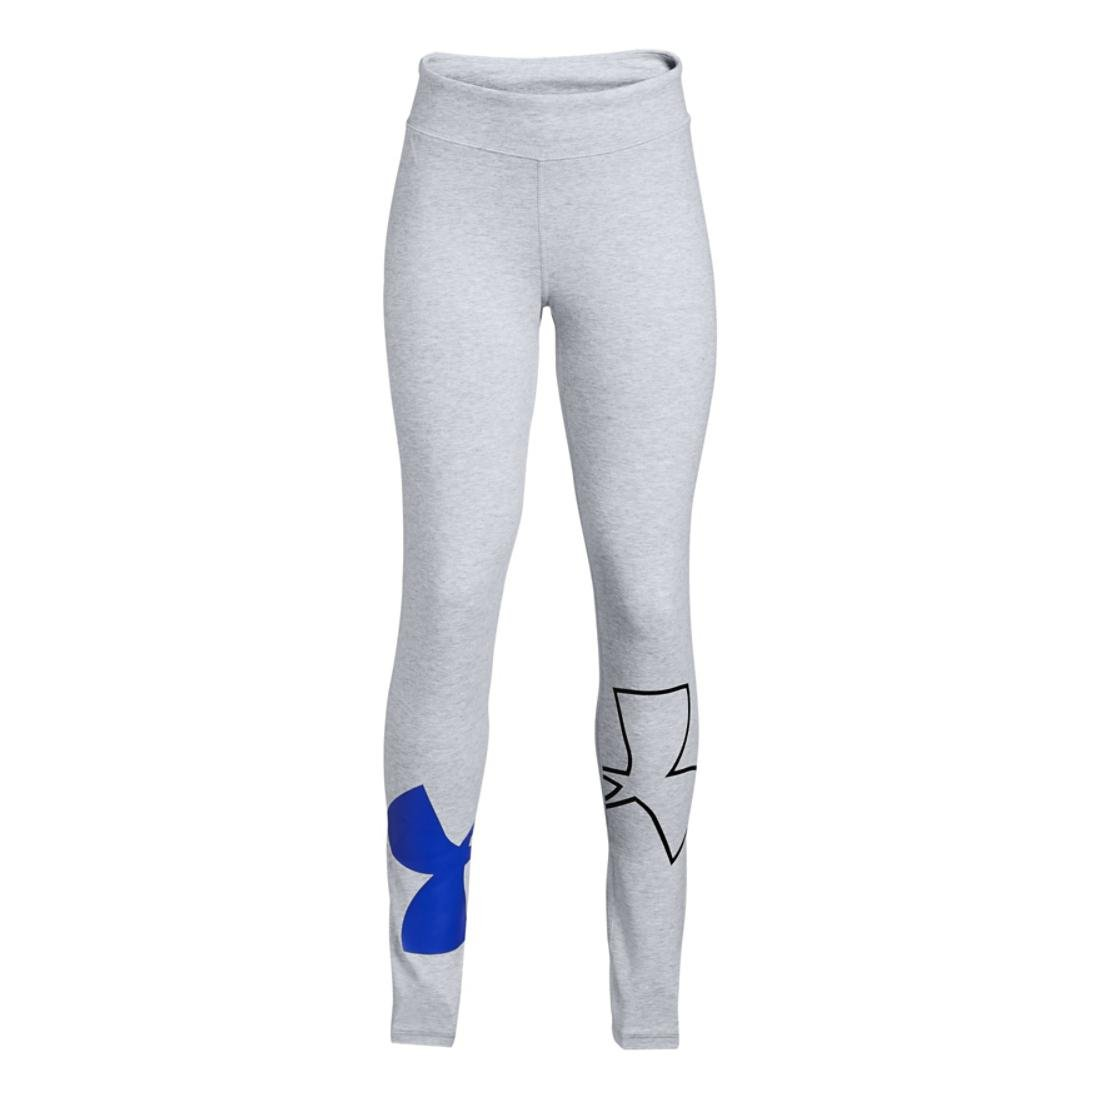 Under Armour Girls UA Favorite Knit, Grey/Purple/Black, YL by Under Armour